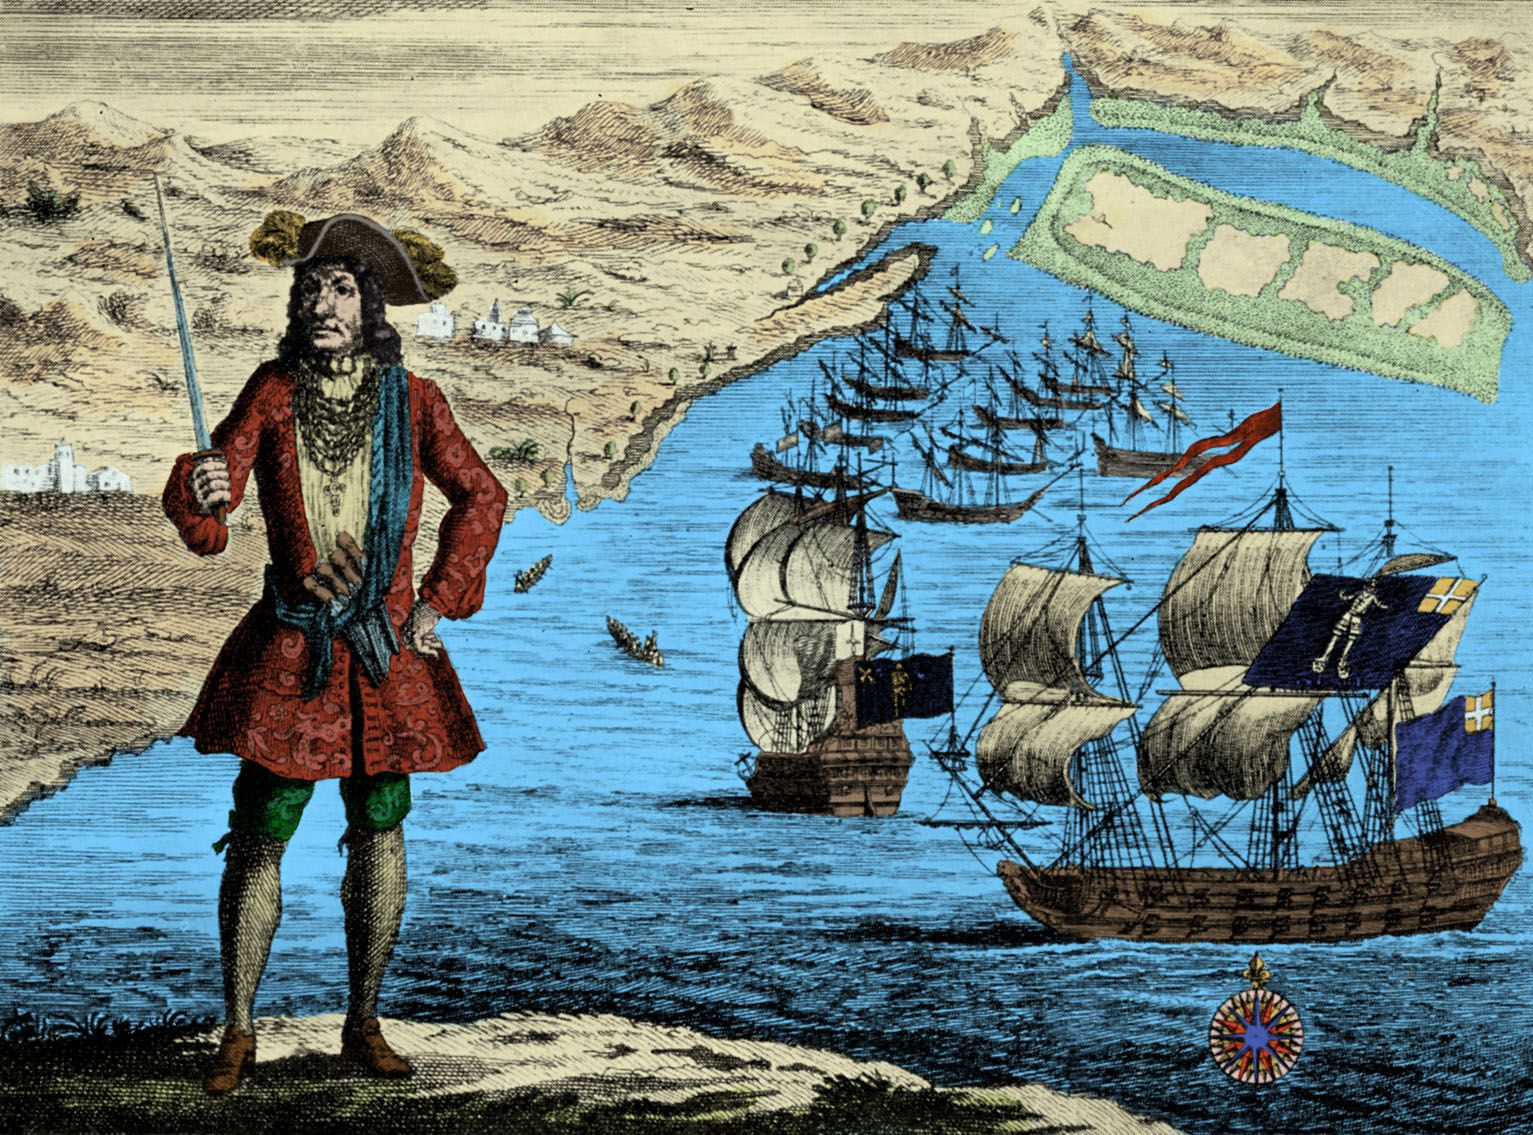 review of atlantic pirates in the golden age history essay Why did the golden age of piracy exist, and how have historians studied this period over time throughout this paper, i will use the terms piracy and privateering piracy was the outlaw practice of preying on merchant ships and raiding coastal towns for profit privateering consisted of the same.